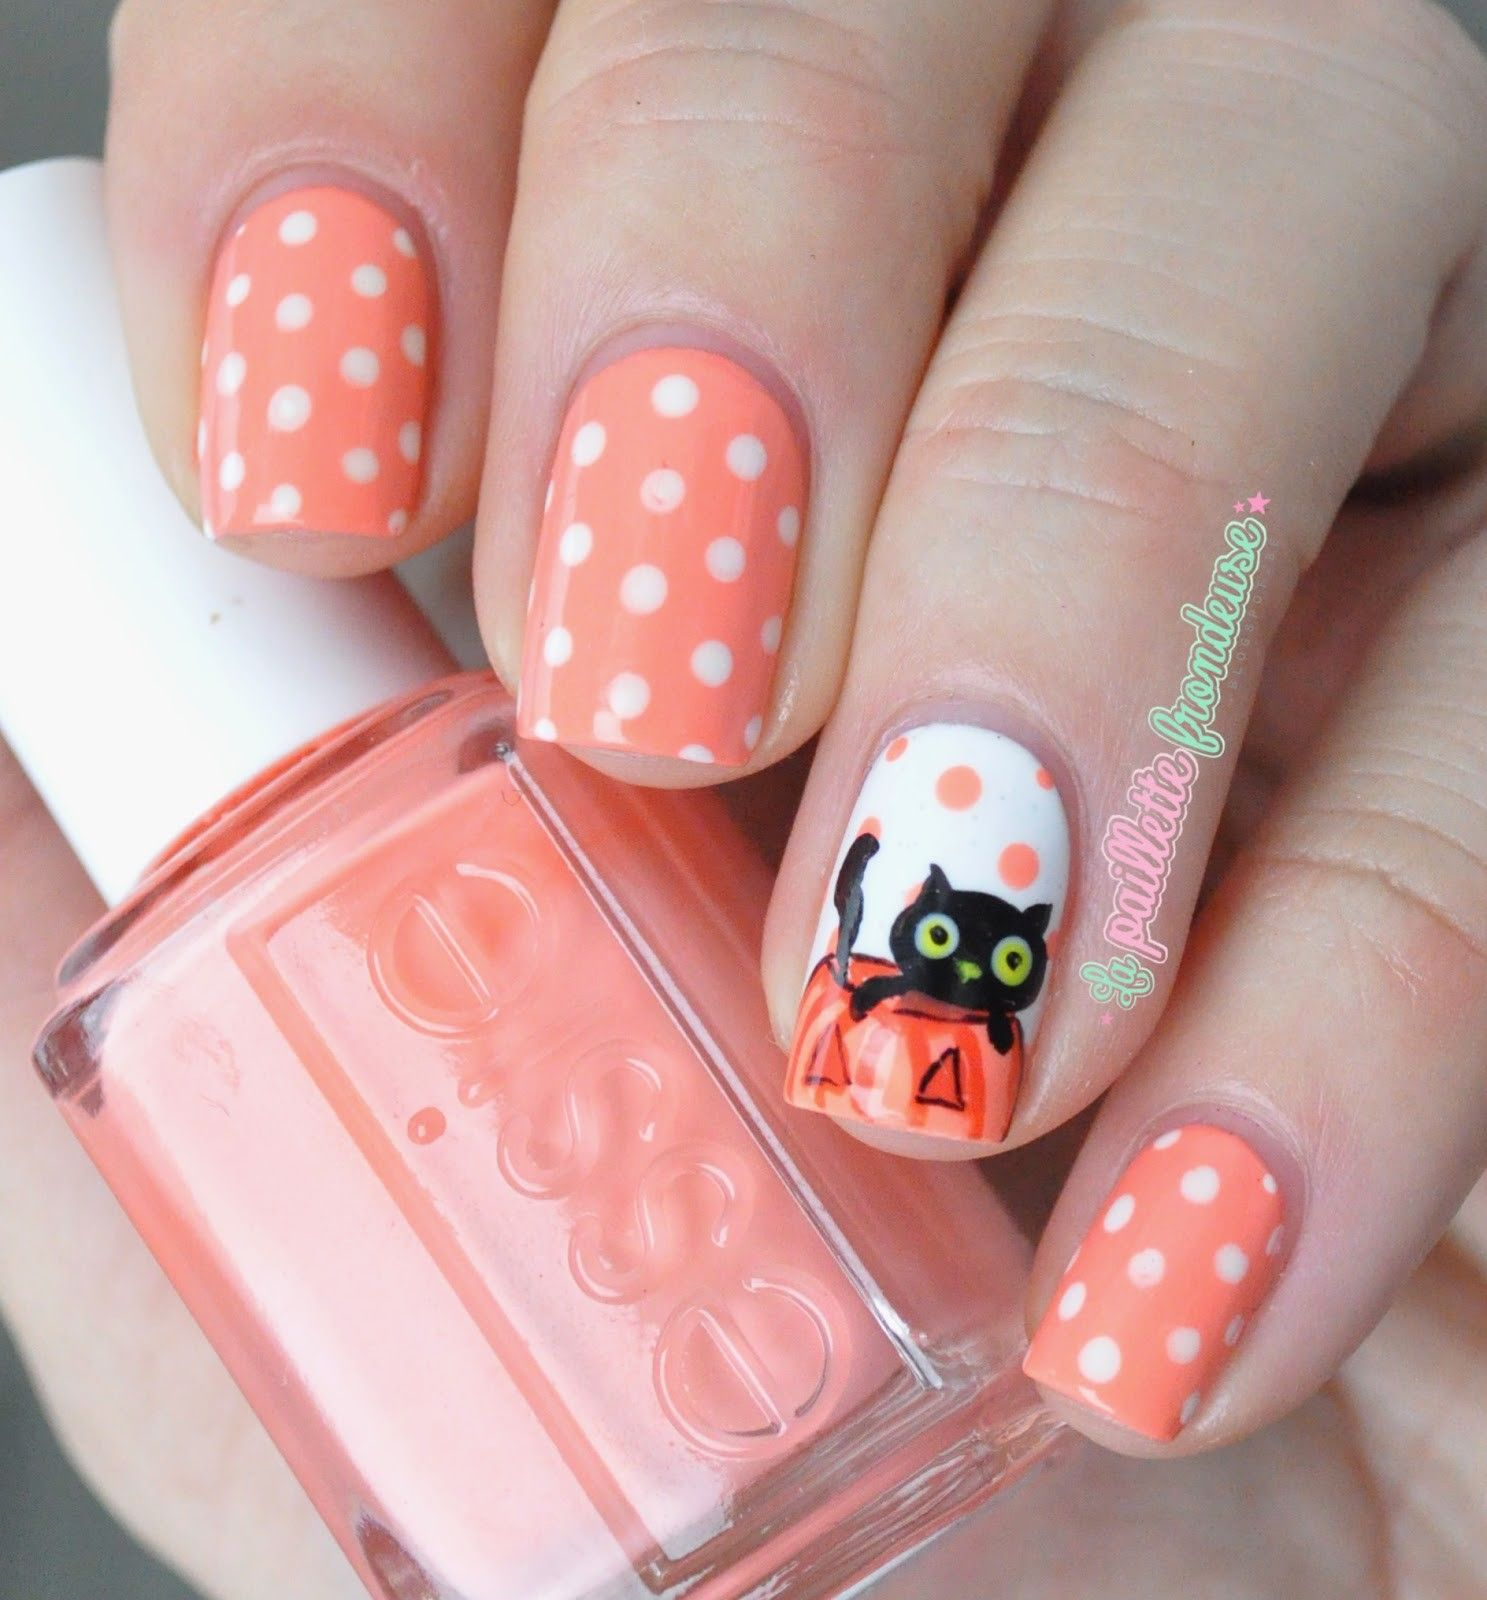 17 Nail Art Designs For Kids Will Want To Show Off This Upcoming School Year Polka Dot Nails Nail Art For Kids Cat Nail Designs